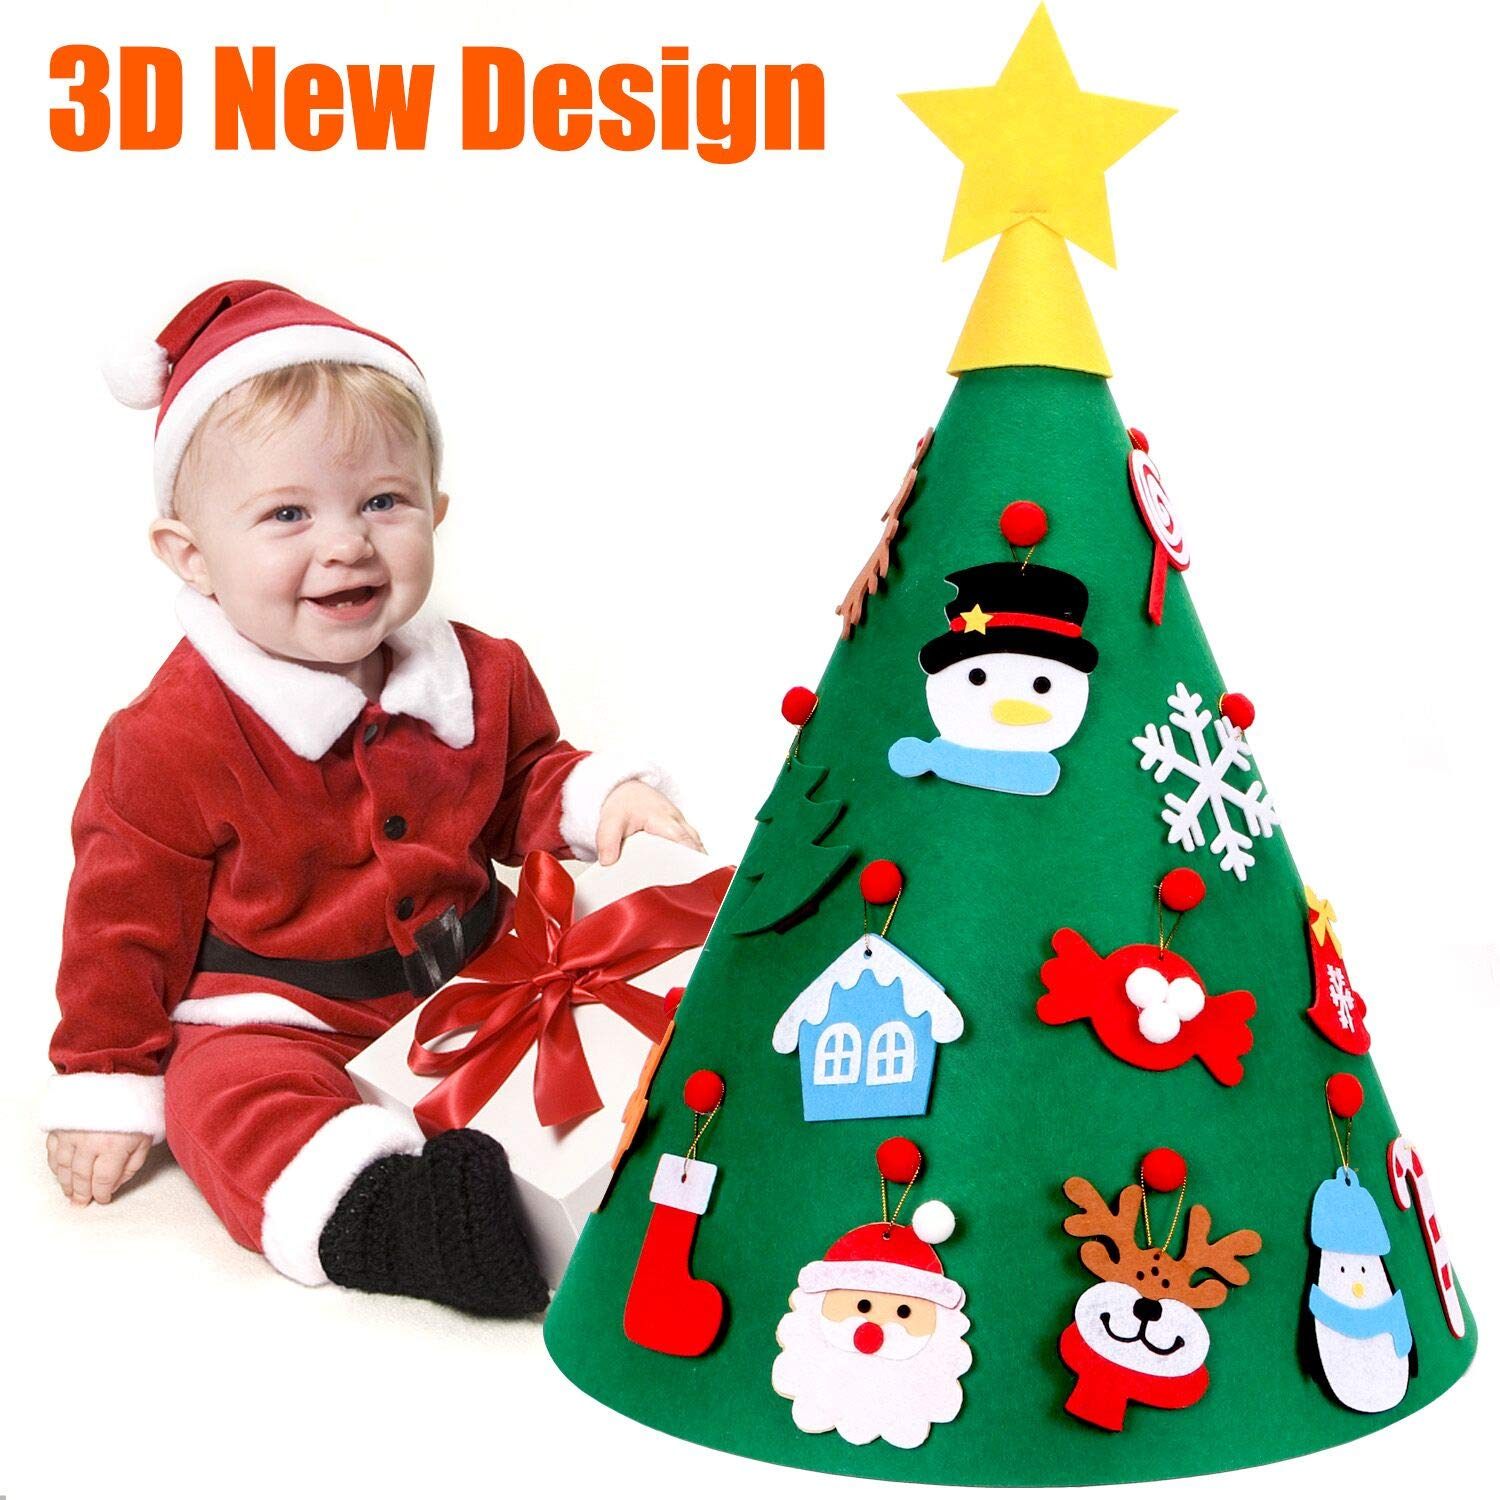 VOCOO 3D DIY Felt Christmas Tree for Kids, with 18 PCS Hanging Ornaments, Best Xmas Gifts for Child Christmas Home Decorations